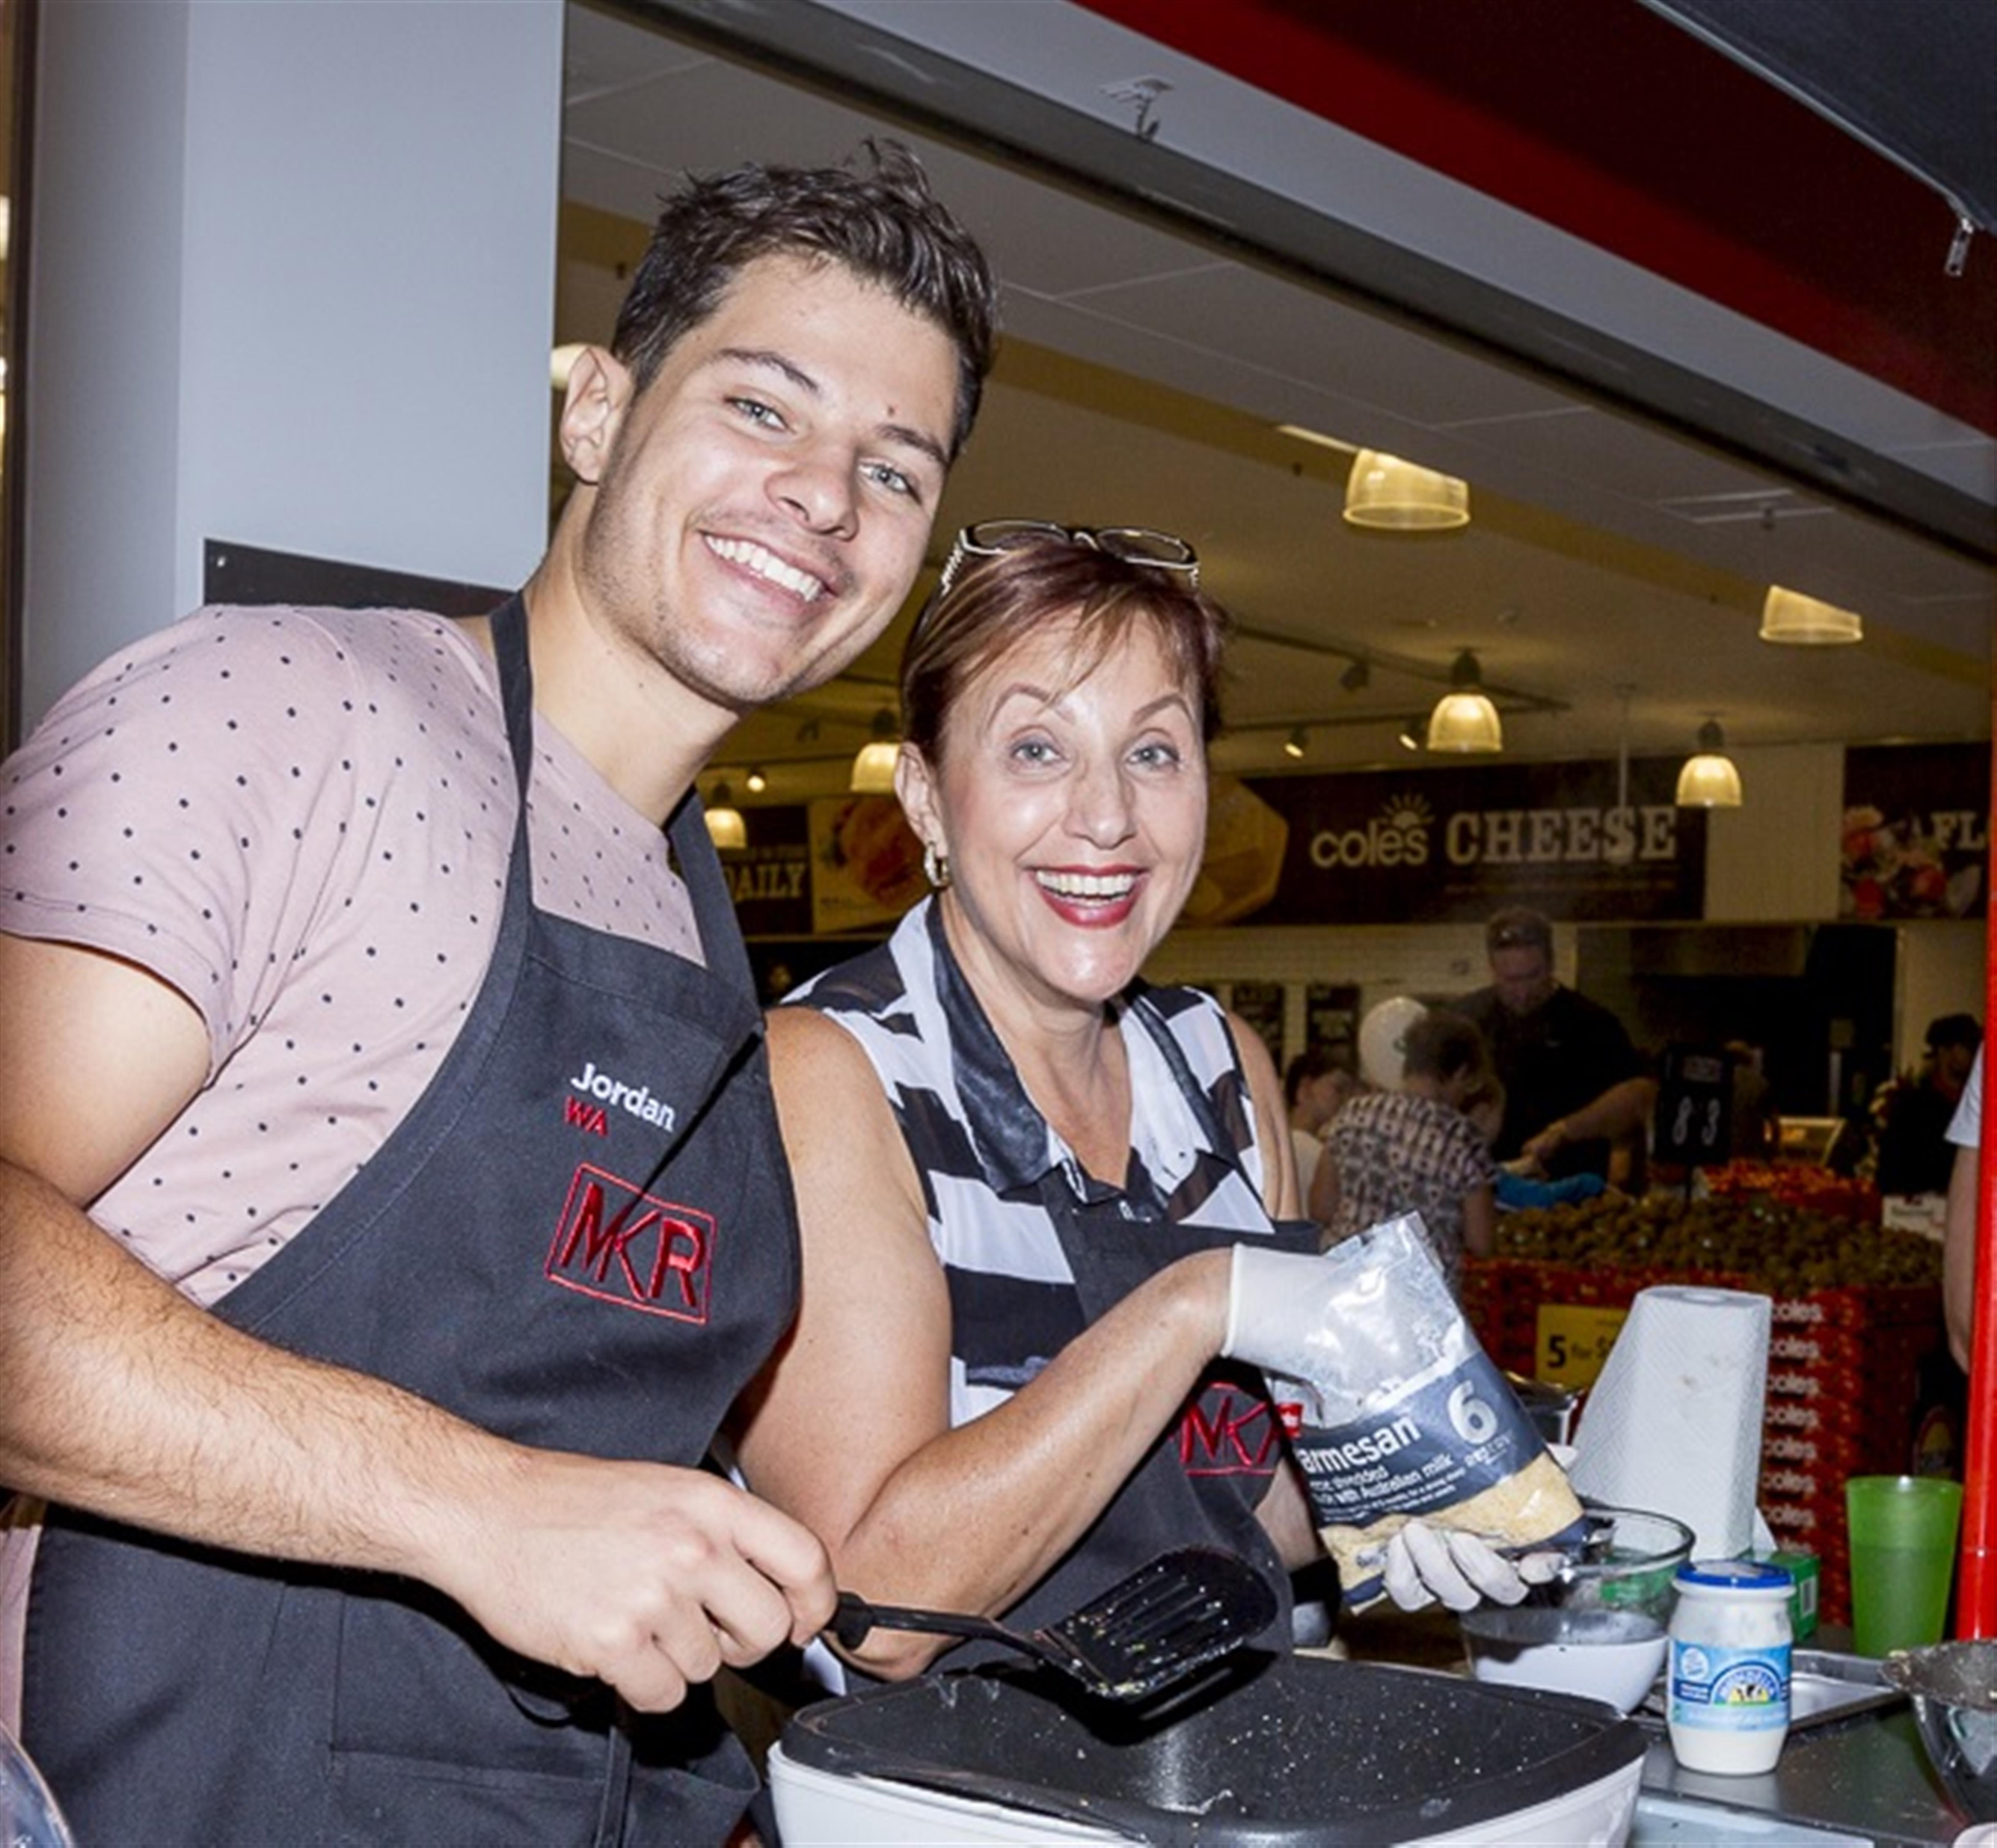 MKR entrants Jordan and Anna Bruno.